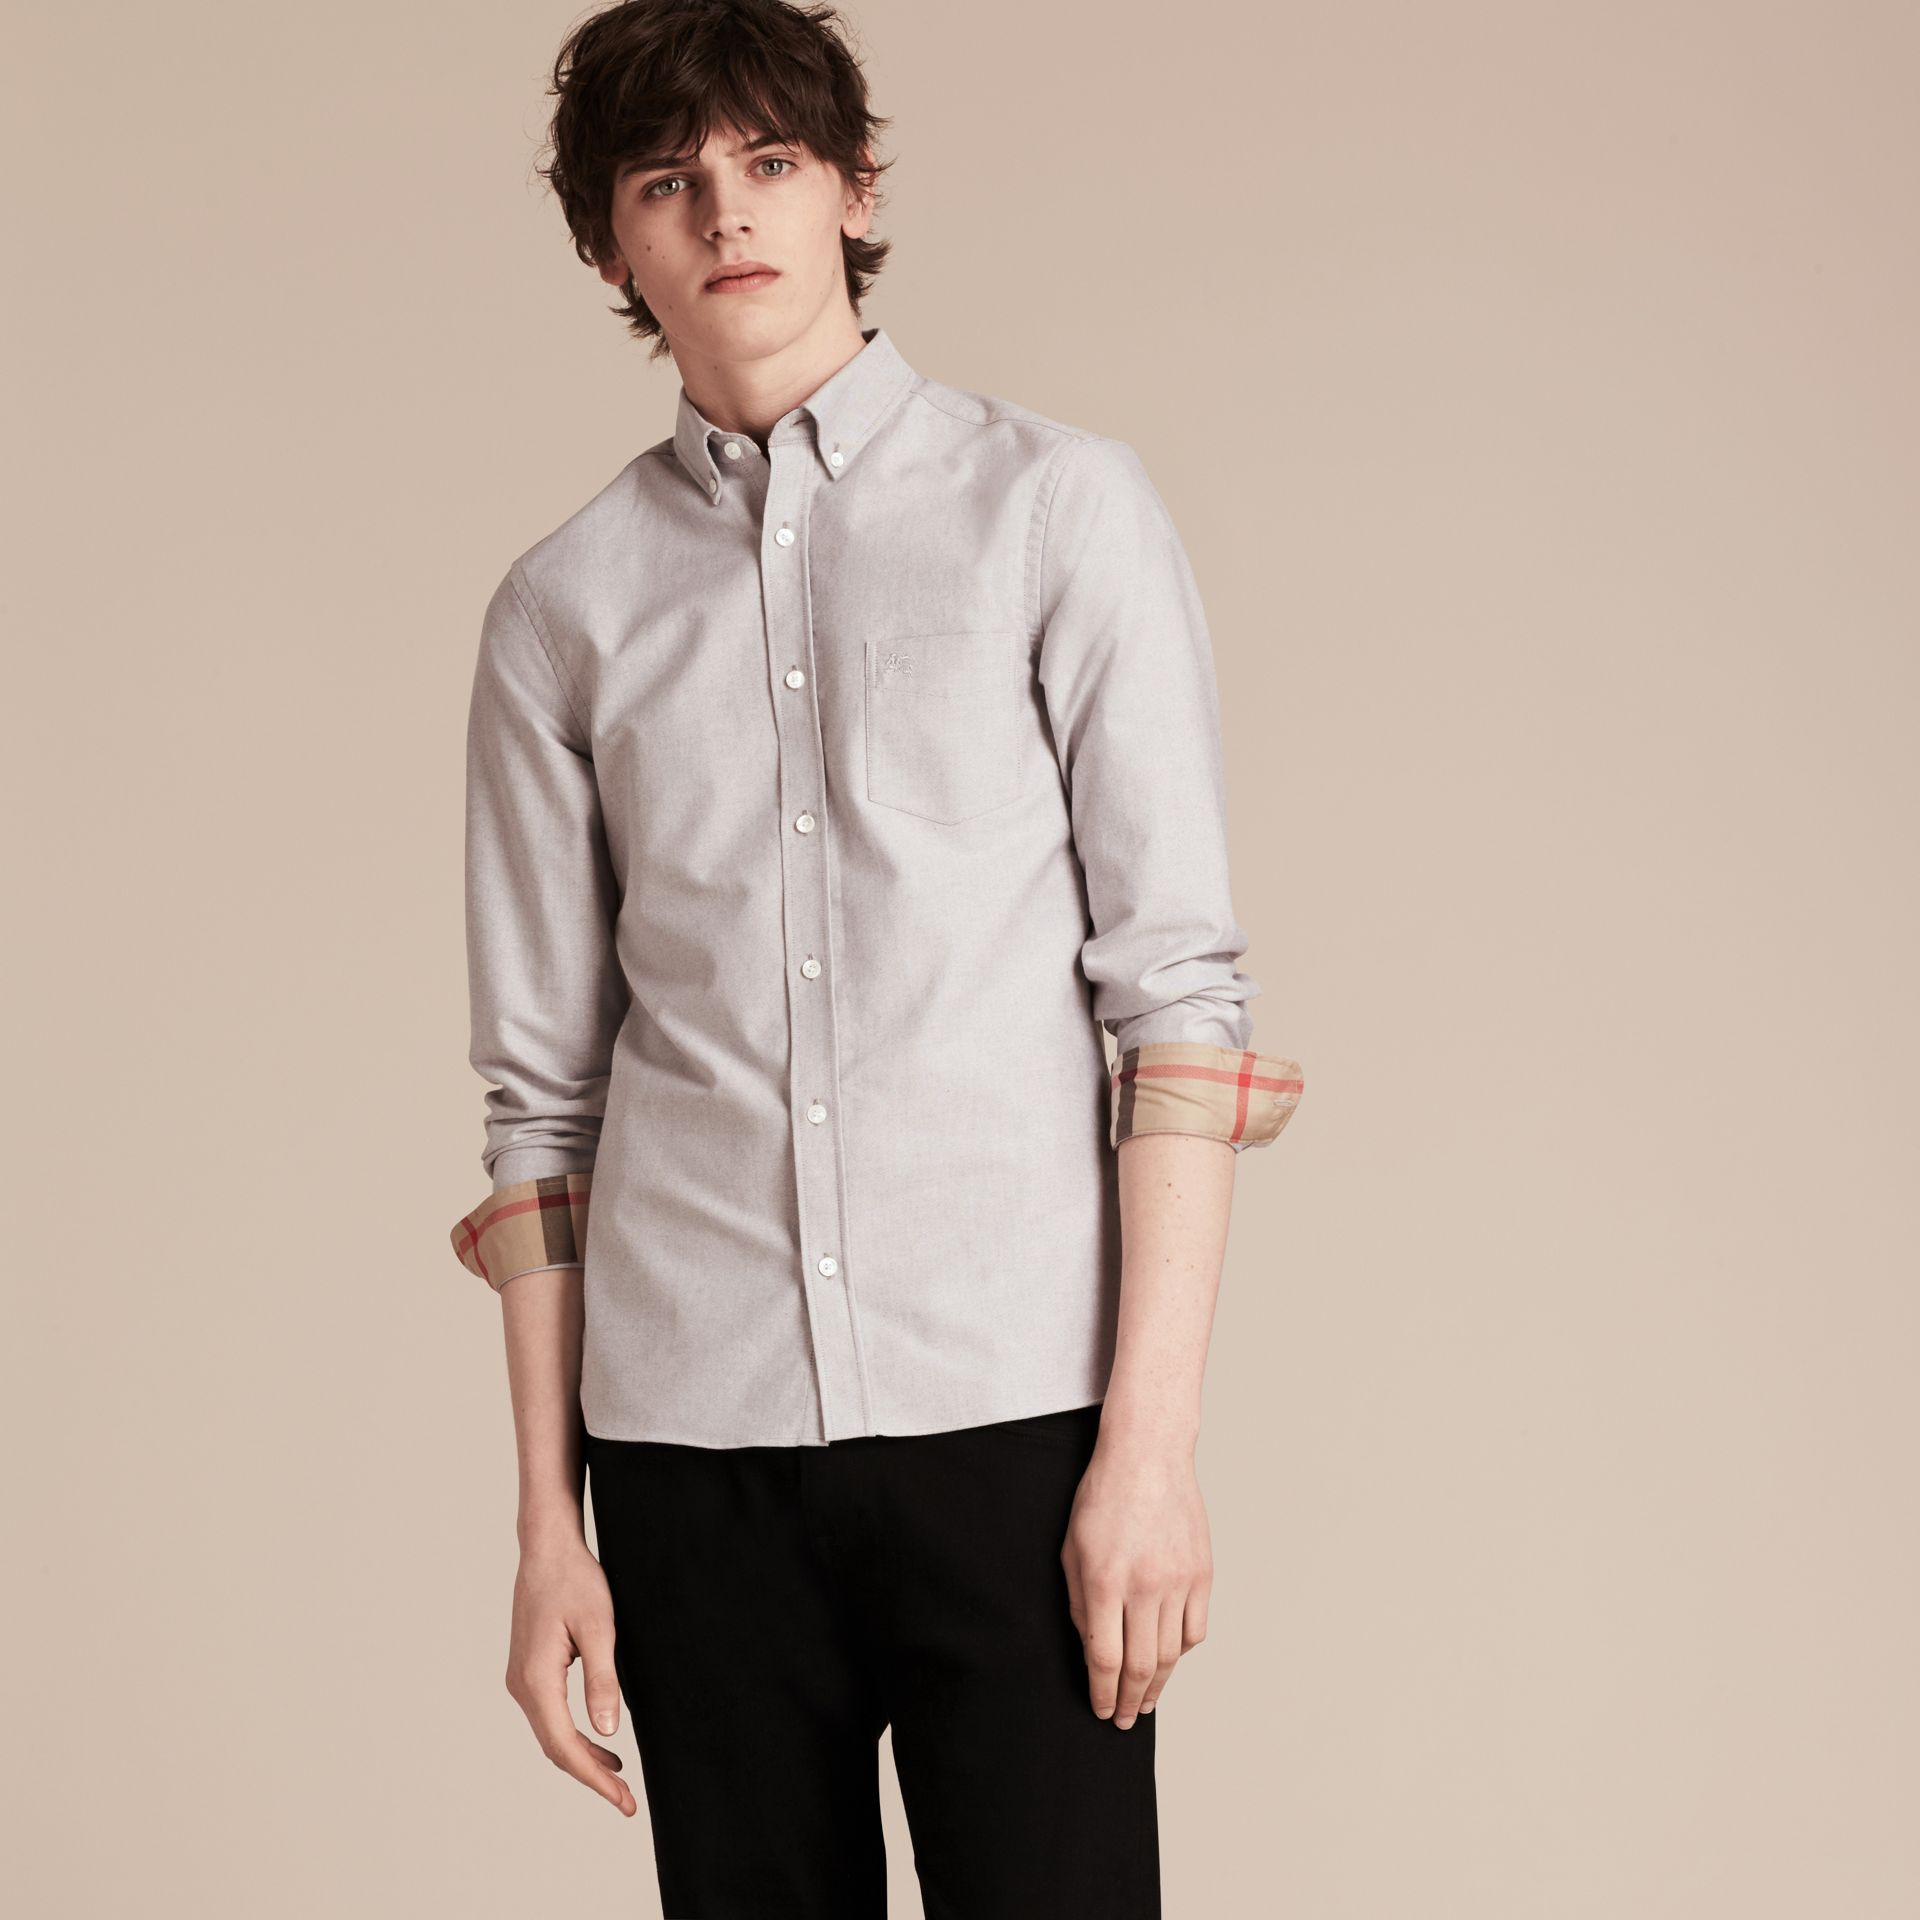 Cotton Oxford Shirt in Charcoal - Men | Burberry United Kingdom - gallery image 4